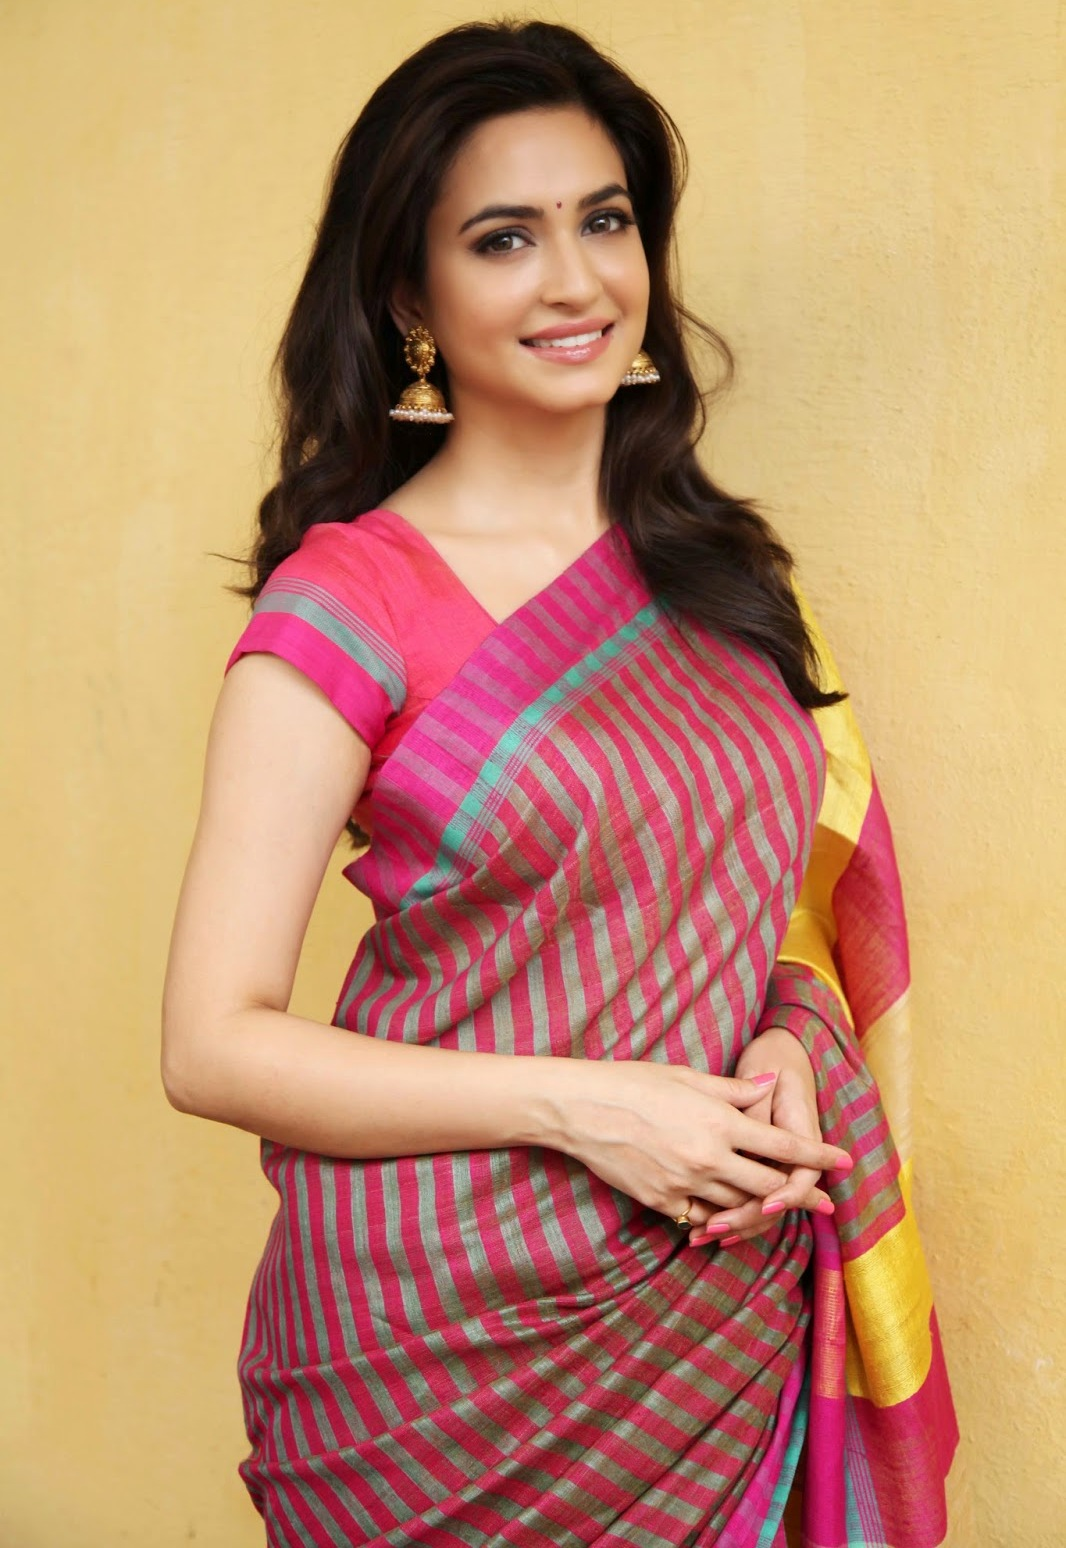 Telugu Hot Girl Kriti Kharbanda Hip Navel Show Stills In Designer Red Saree